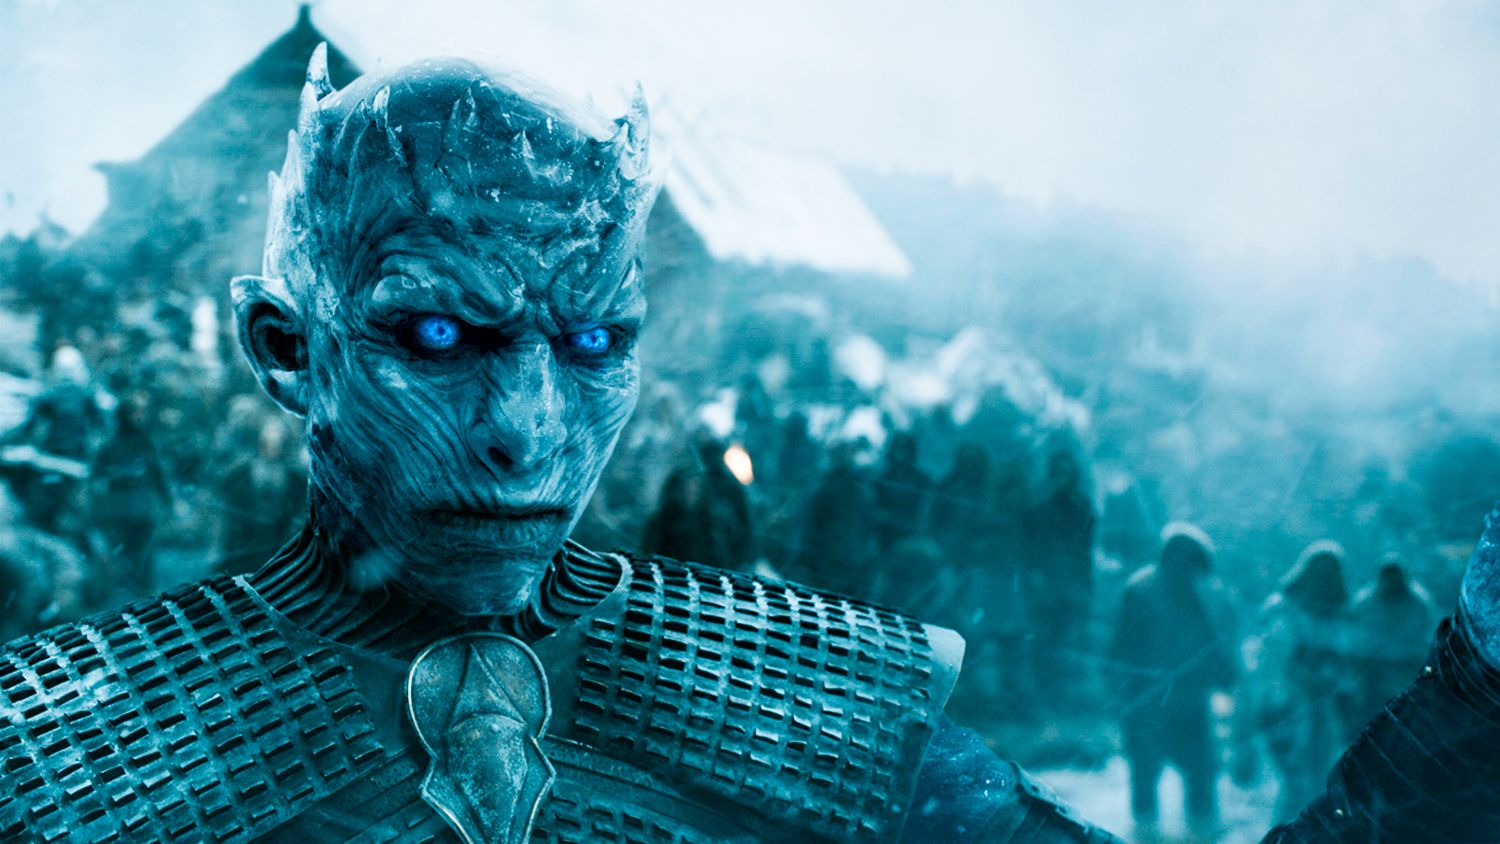 People cannot believe that Night King scene in Game of Thrones